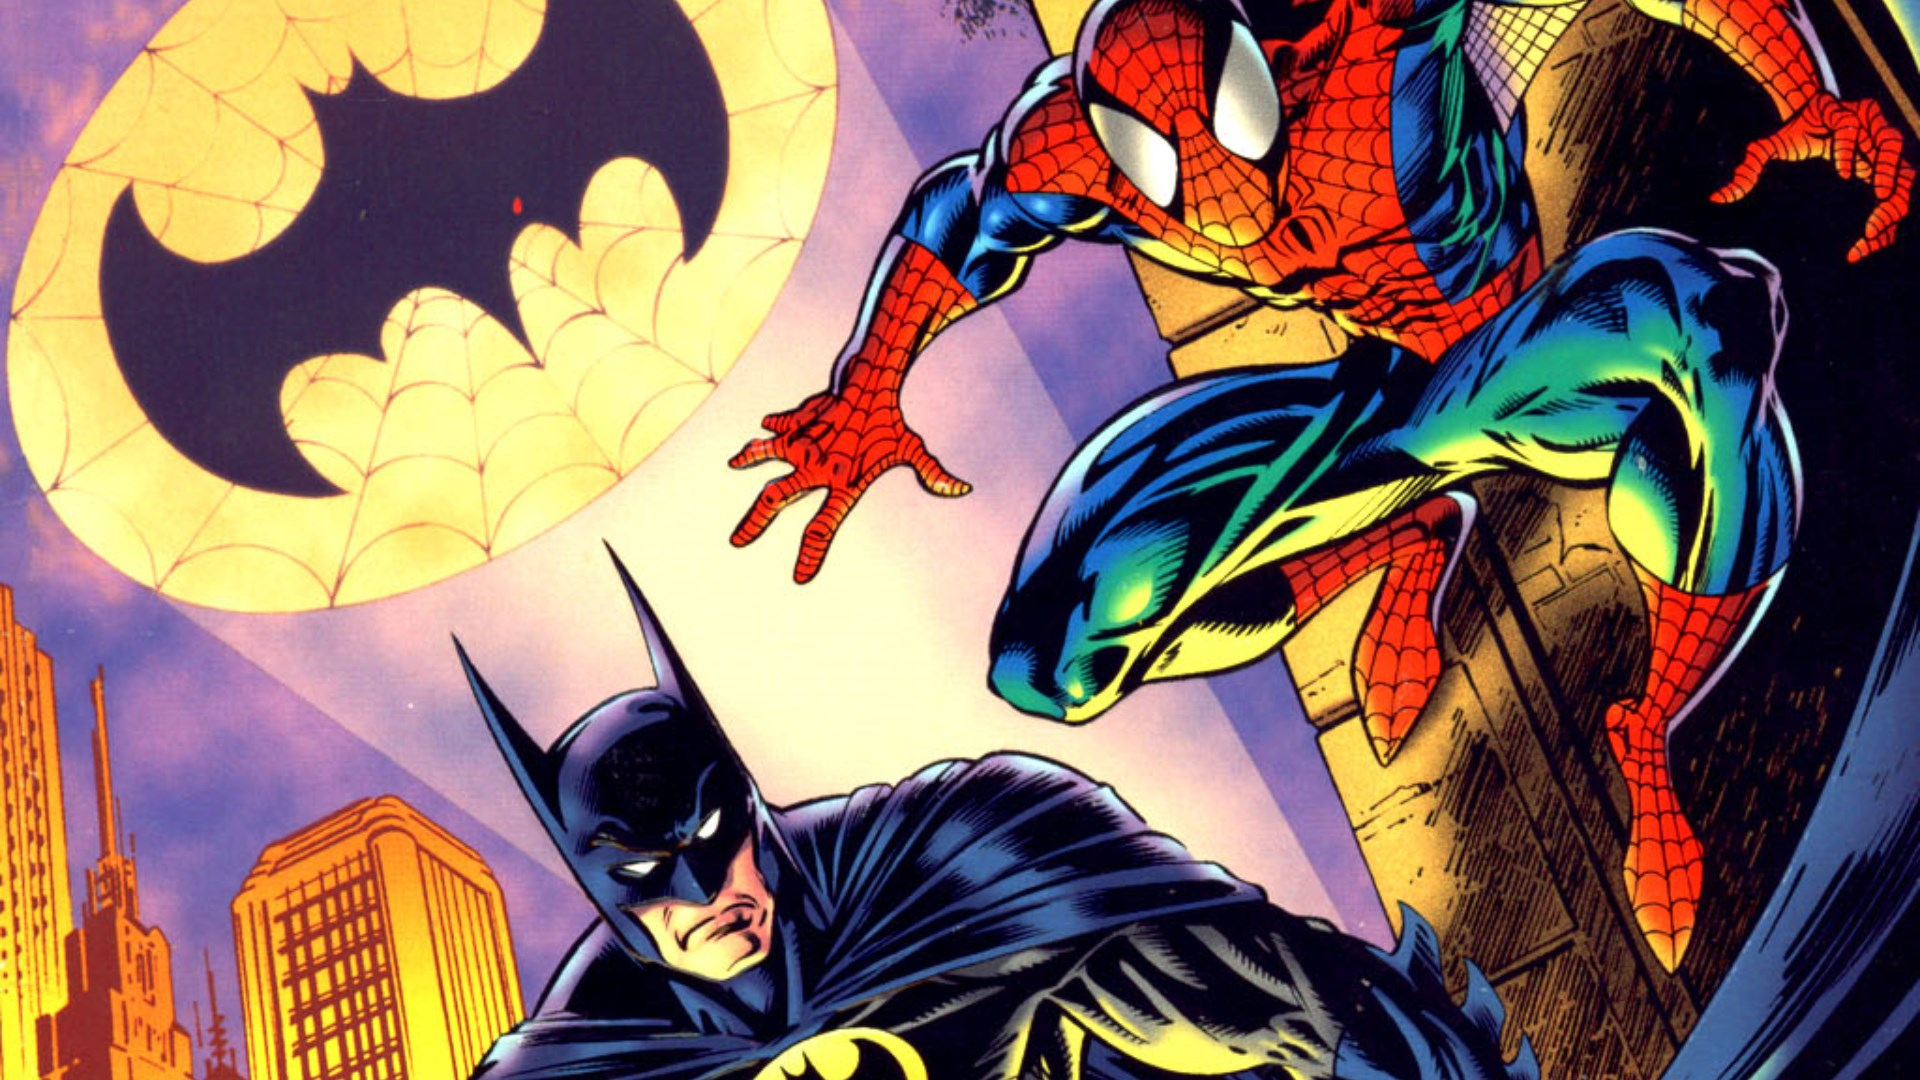 1920x1080-free-screensaver-for-spider-man-and-batman-wallpaper-wp380803